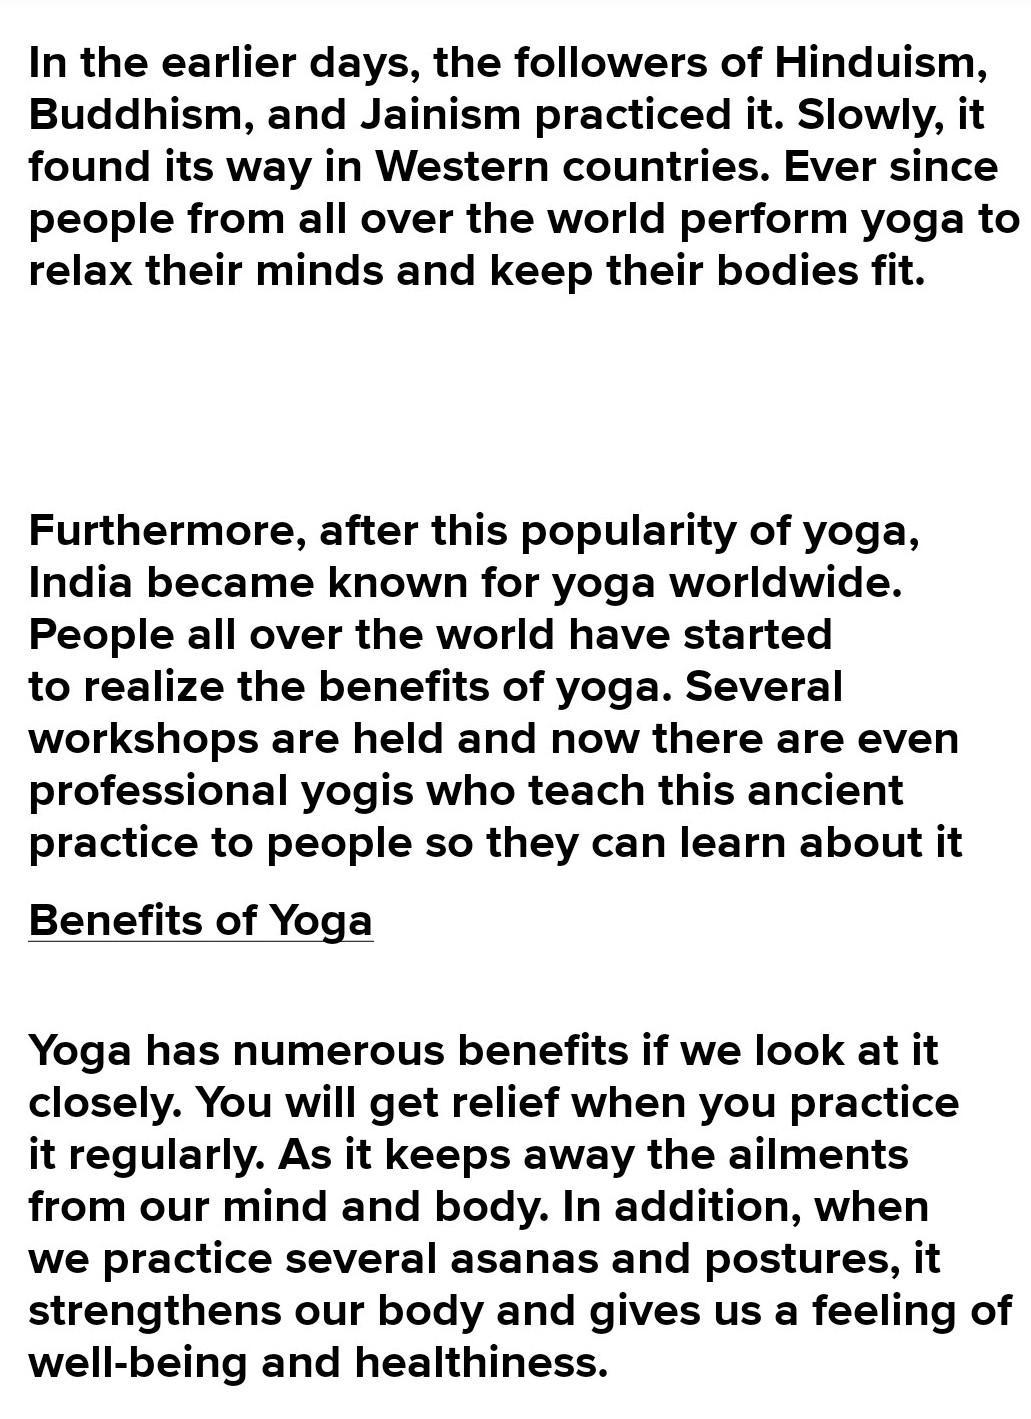 Essay Writing On Yoga The Ancient Art Of Well Being Words Limited 500 Brainly In